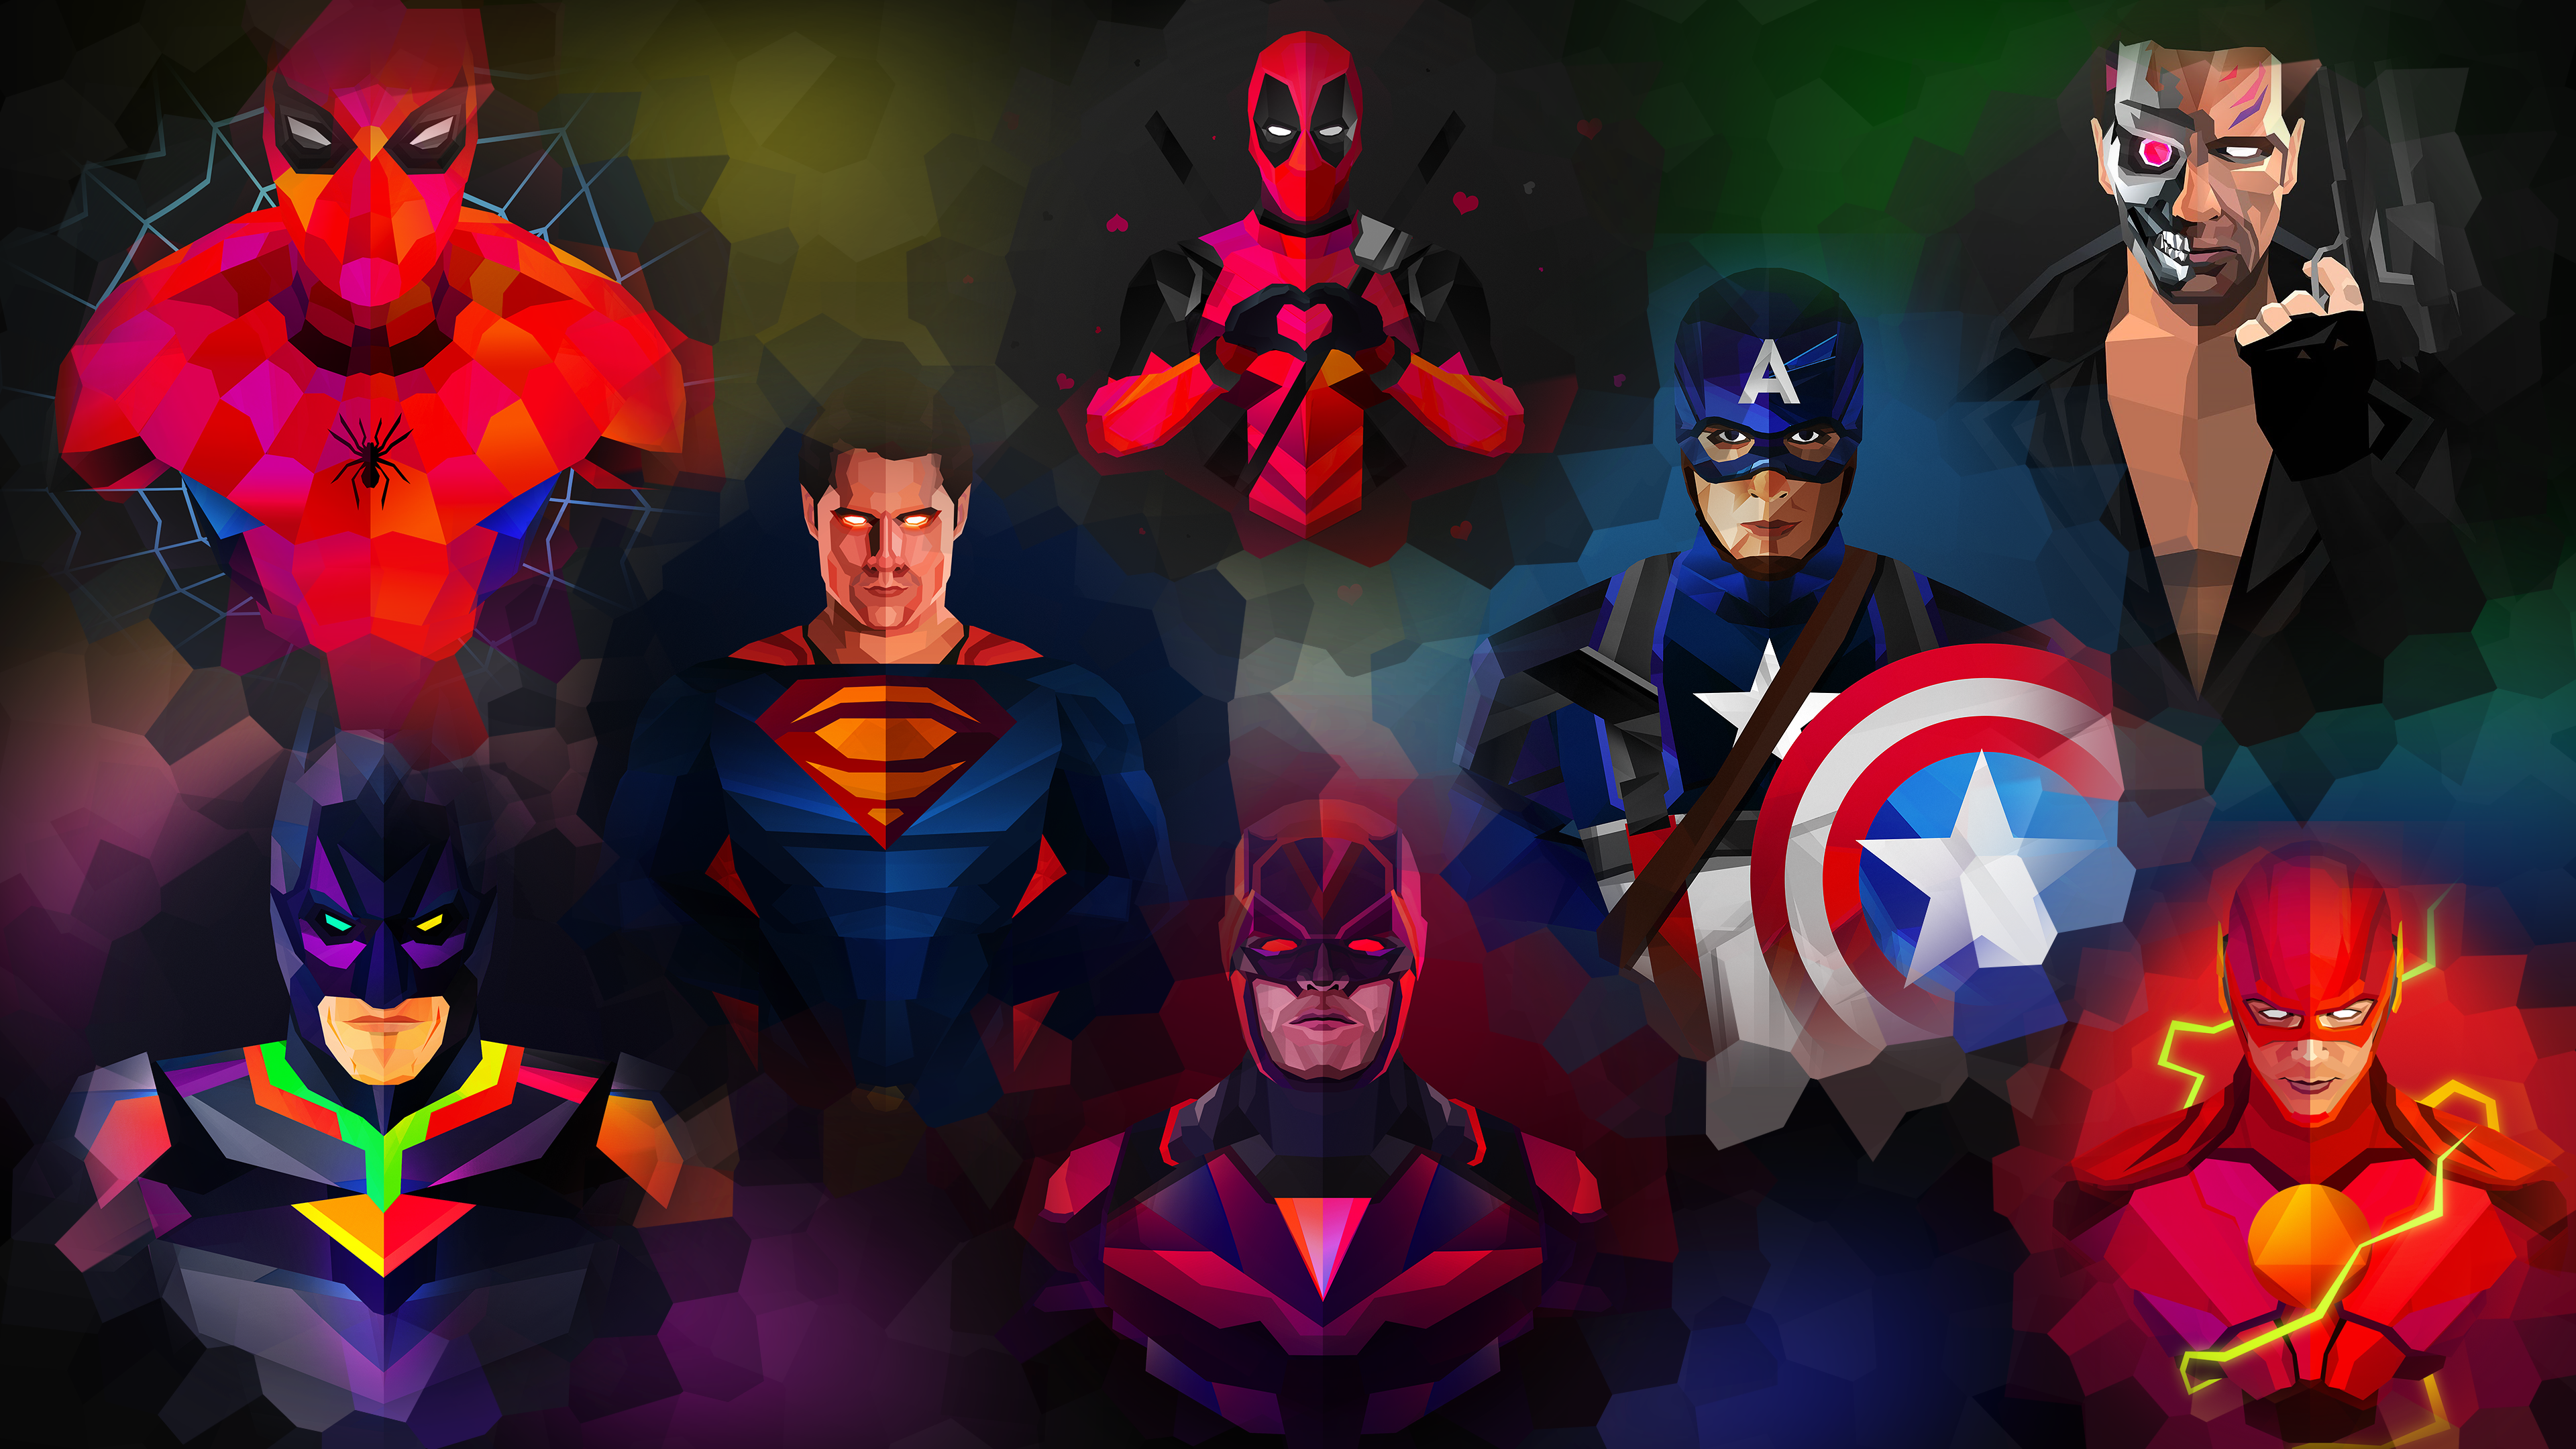 Superhero 4k Wallpaper Wallpapers Wallpaper Marvel Wallpaper